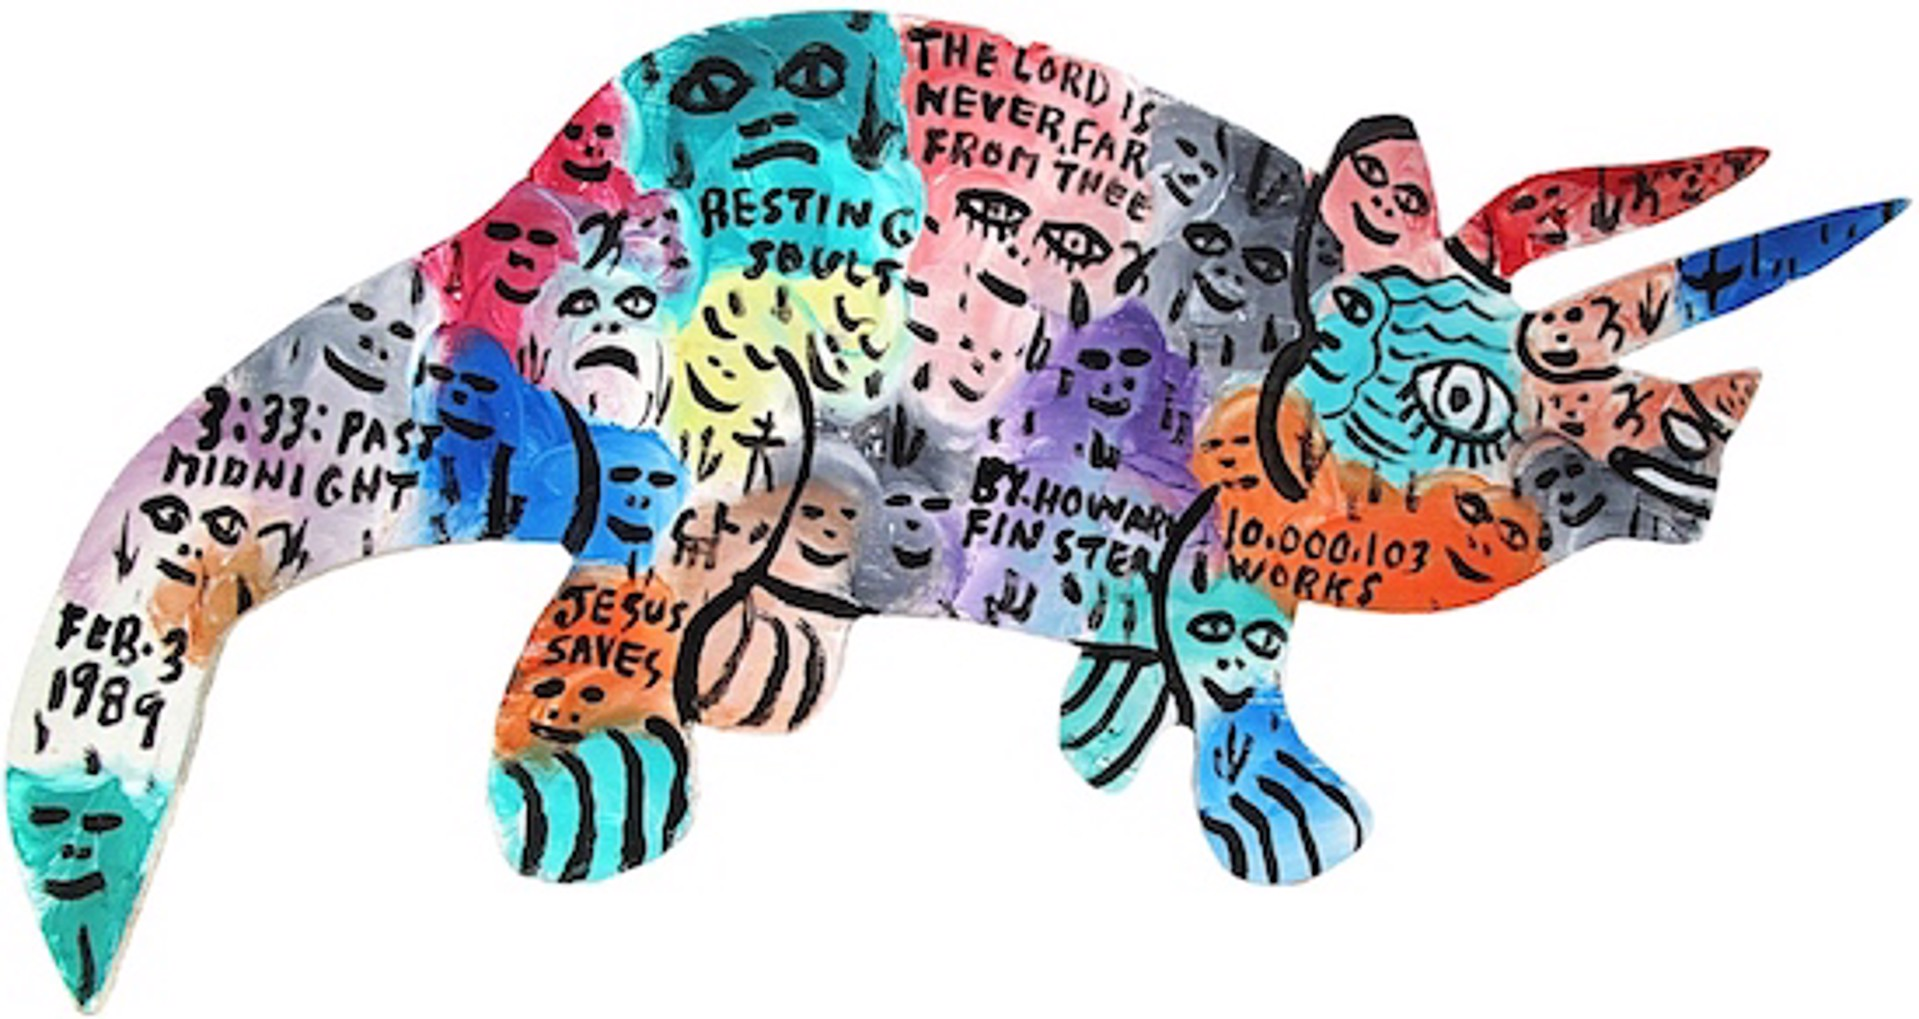 Triceratops by Howard Finster